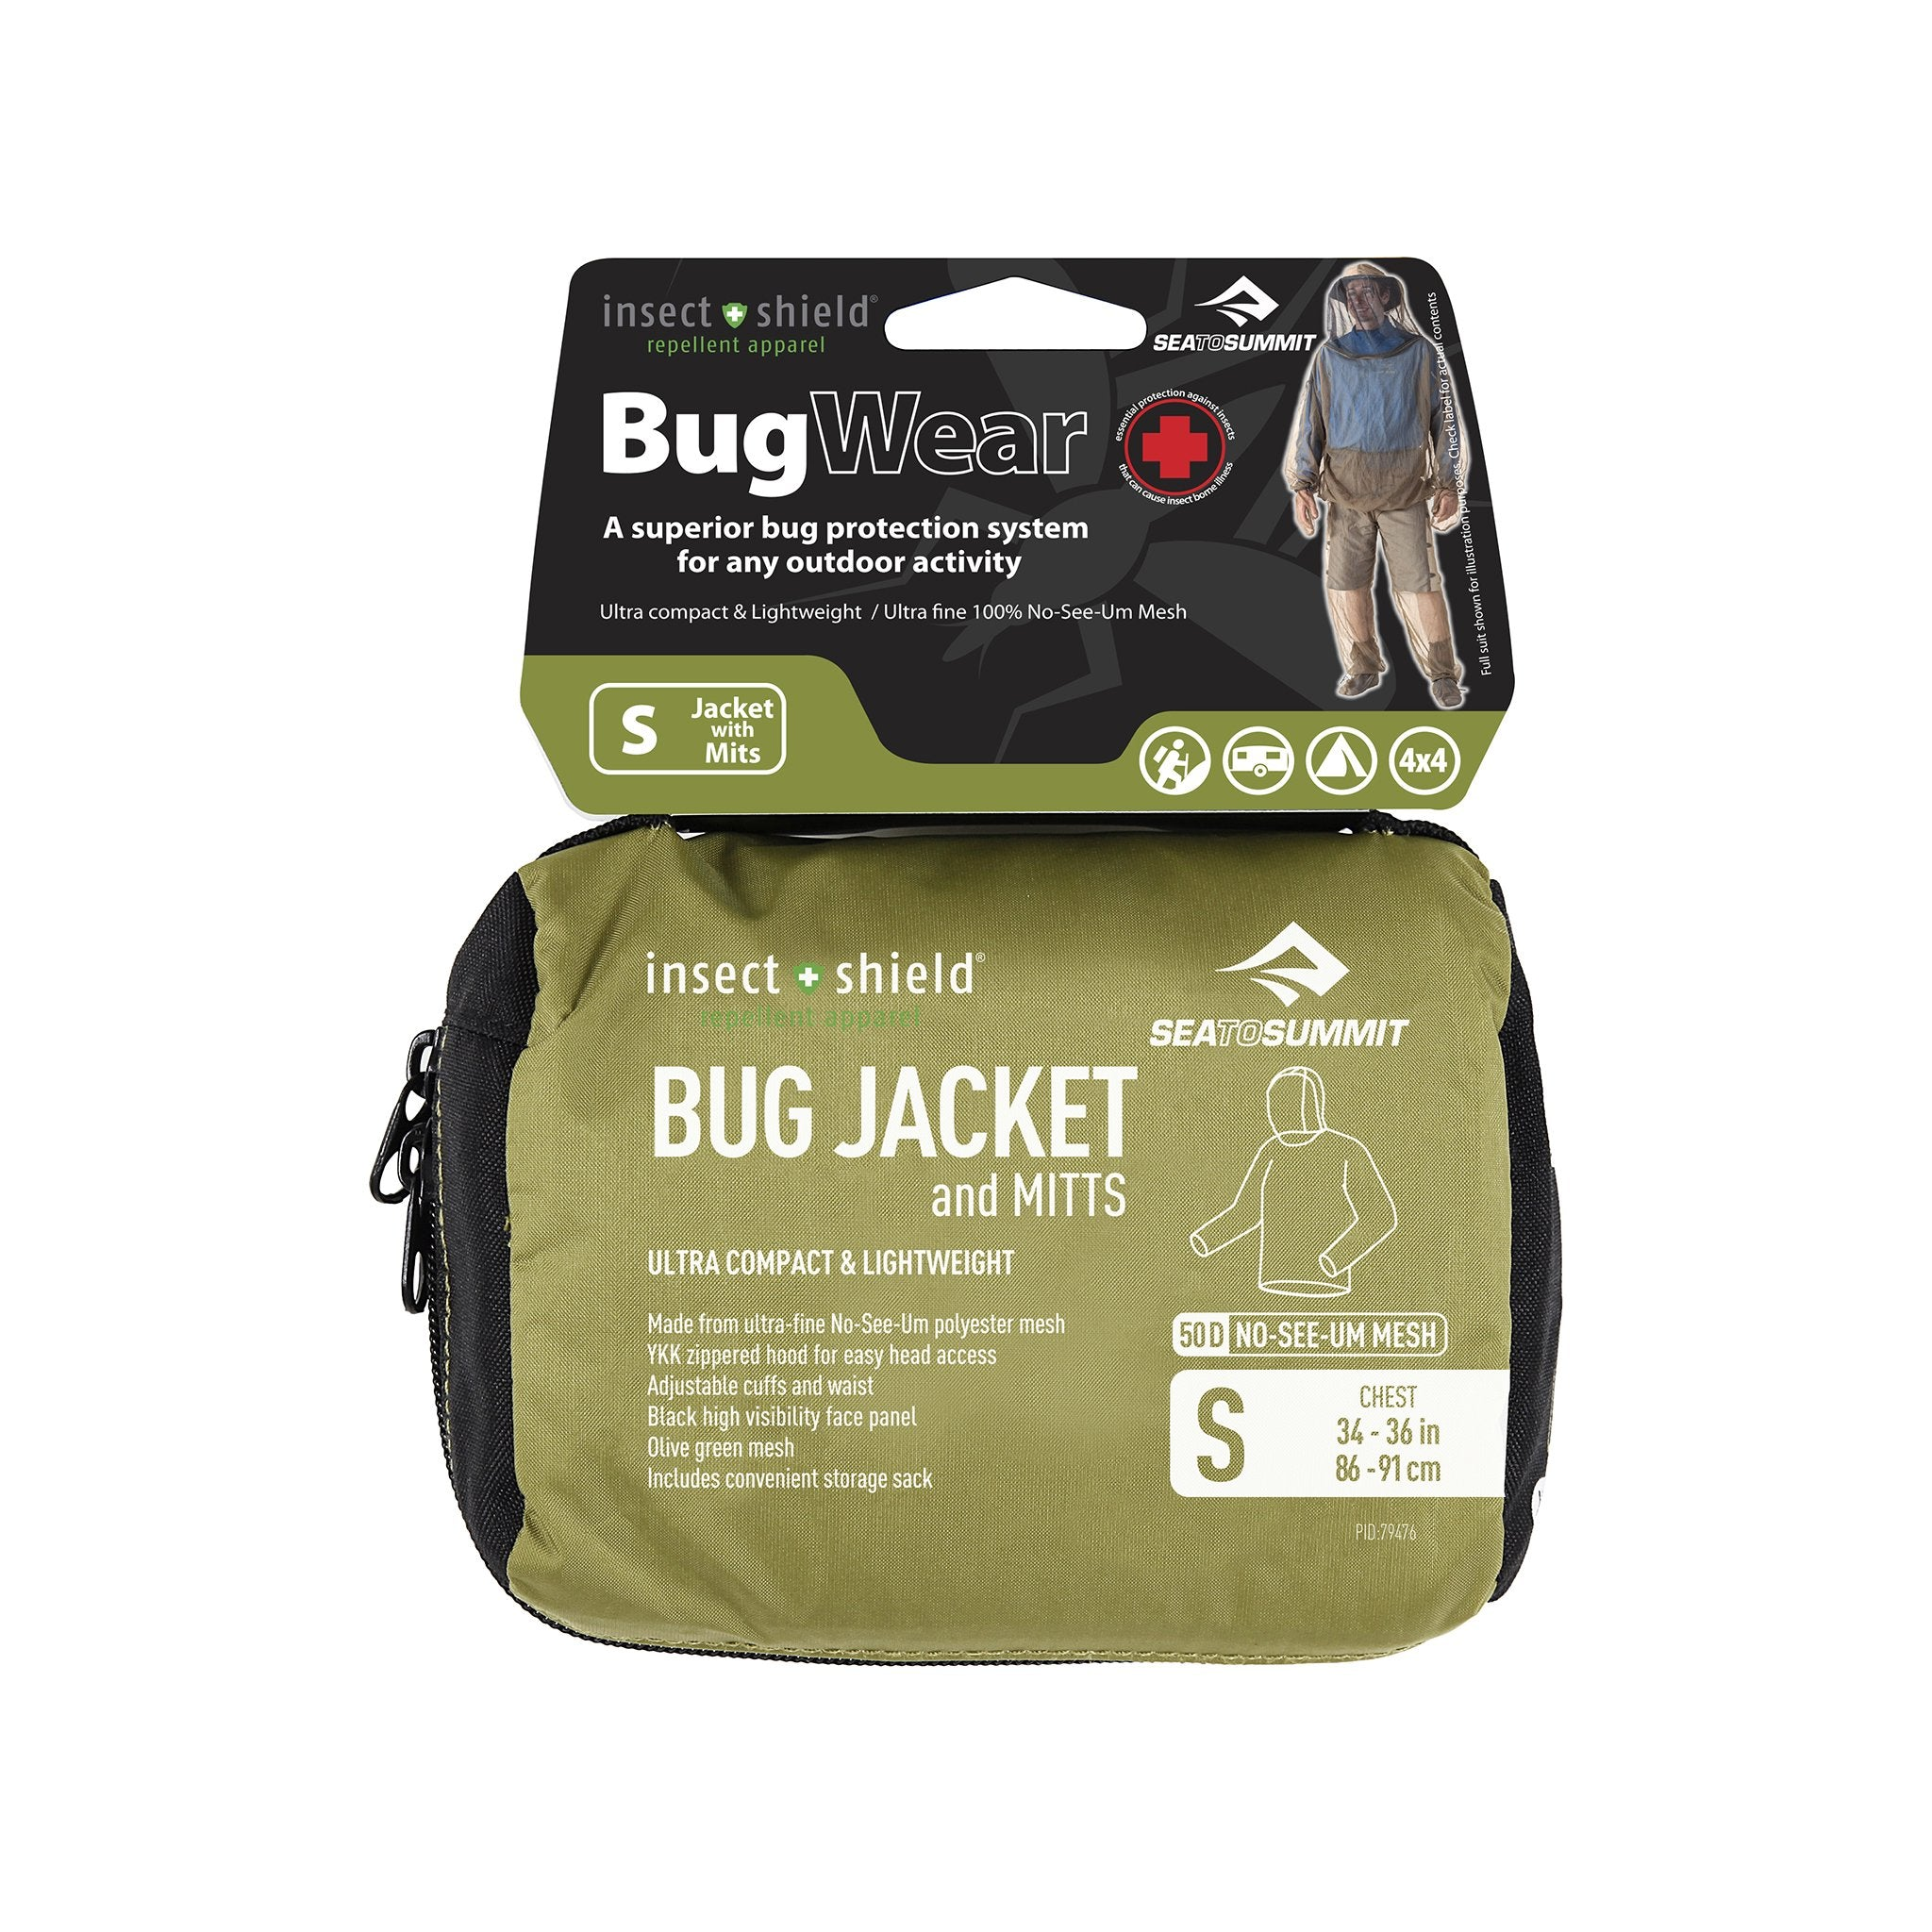 Sea To Summit Bug Jacket & Mitts +Insect Shield